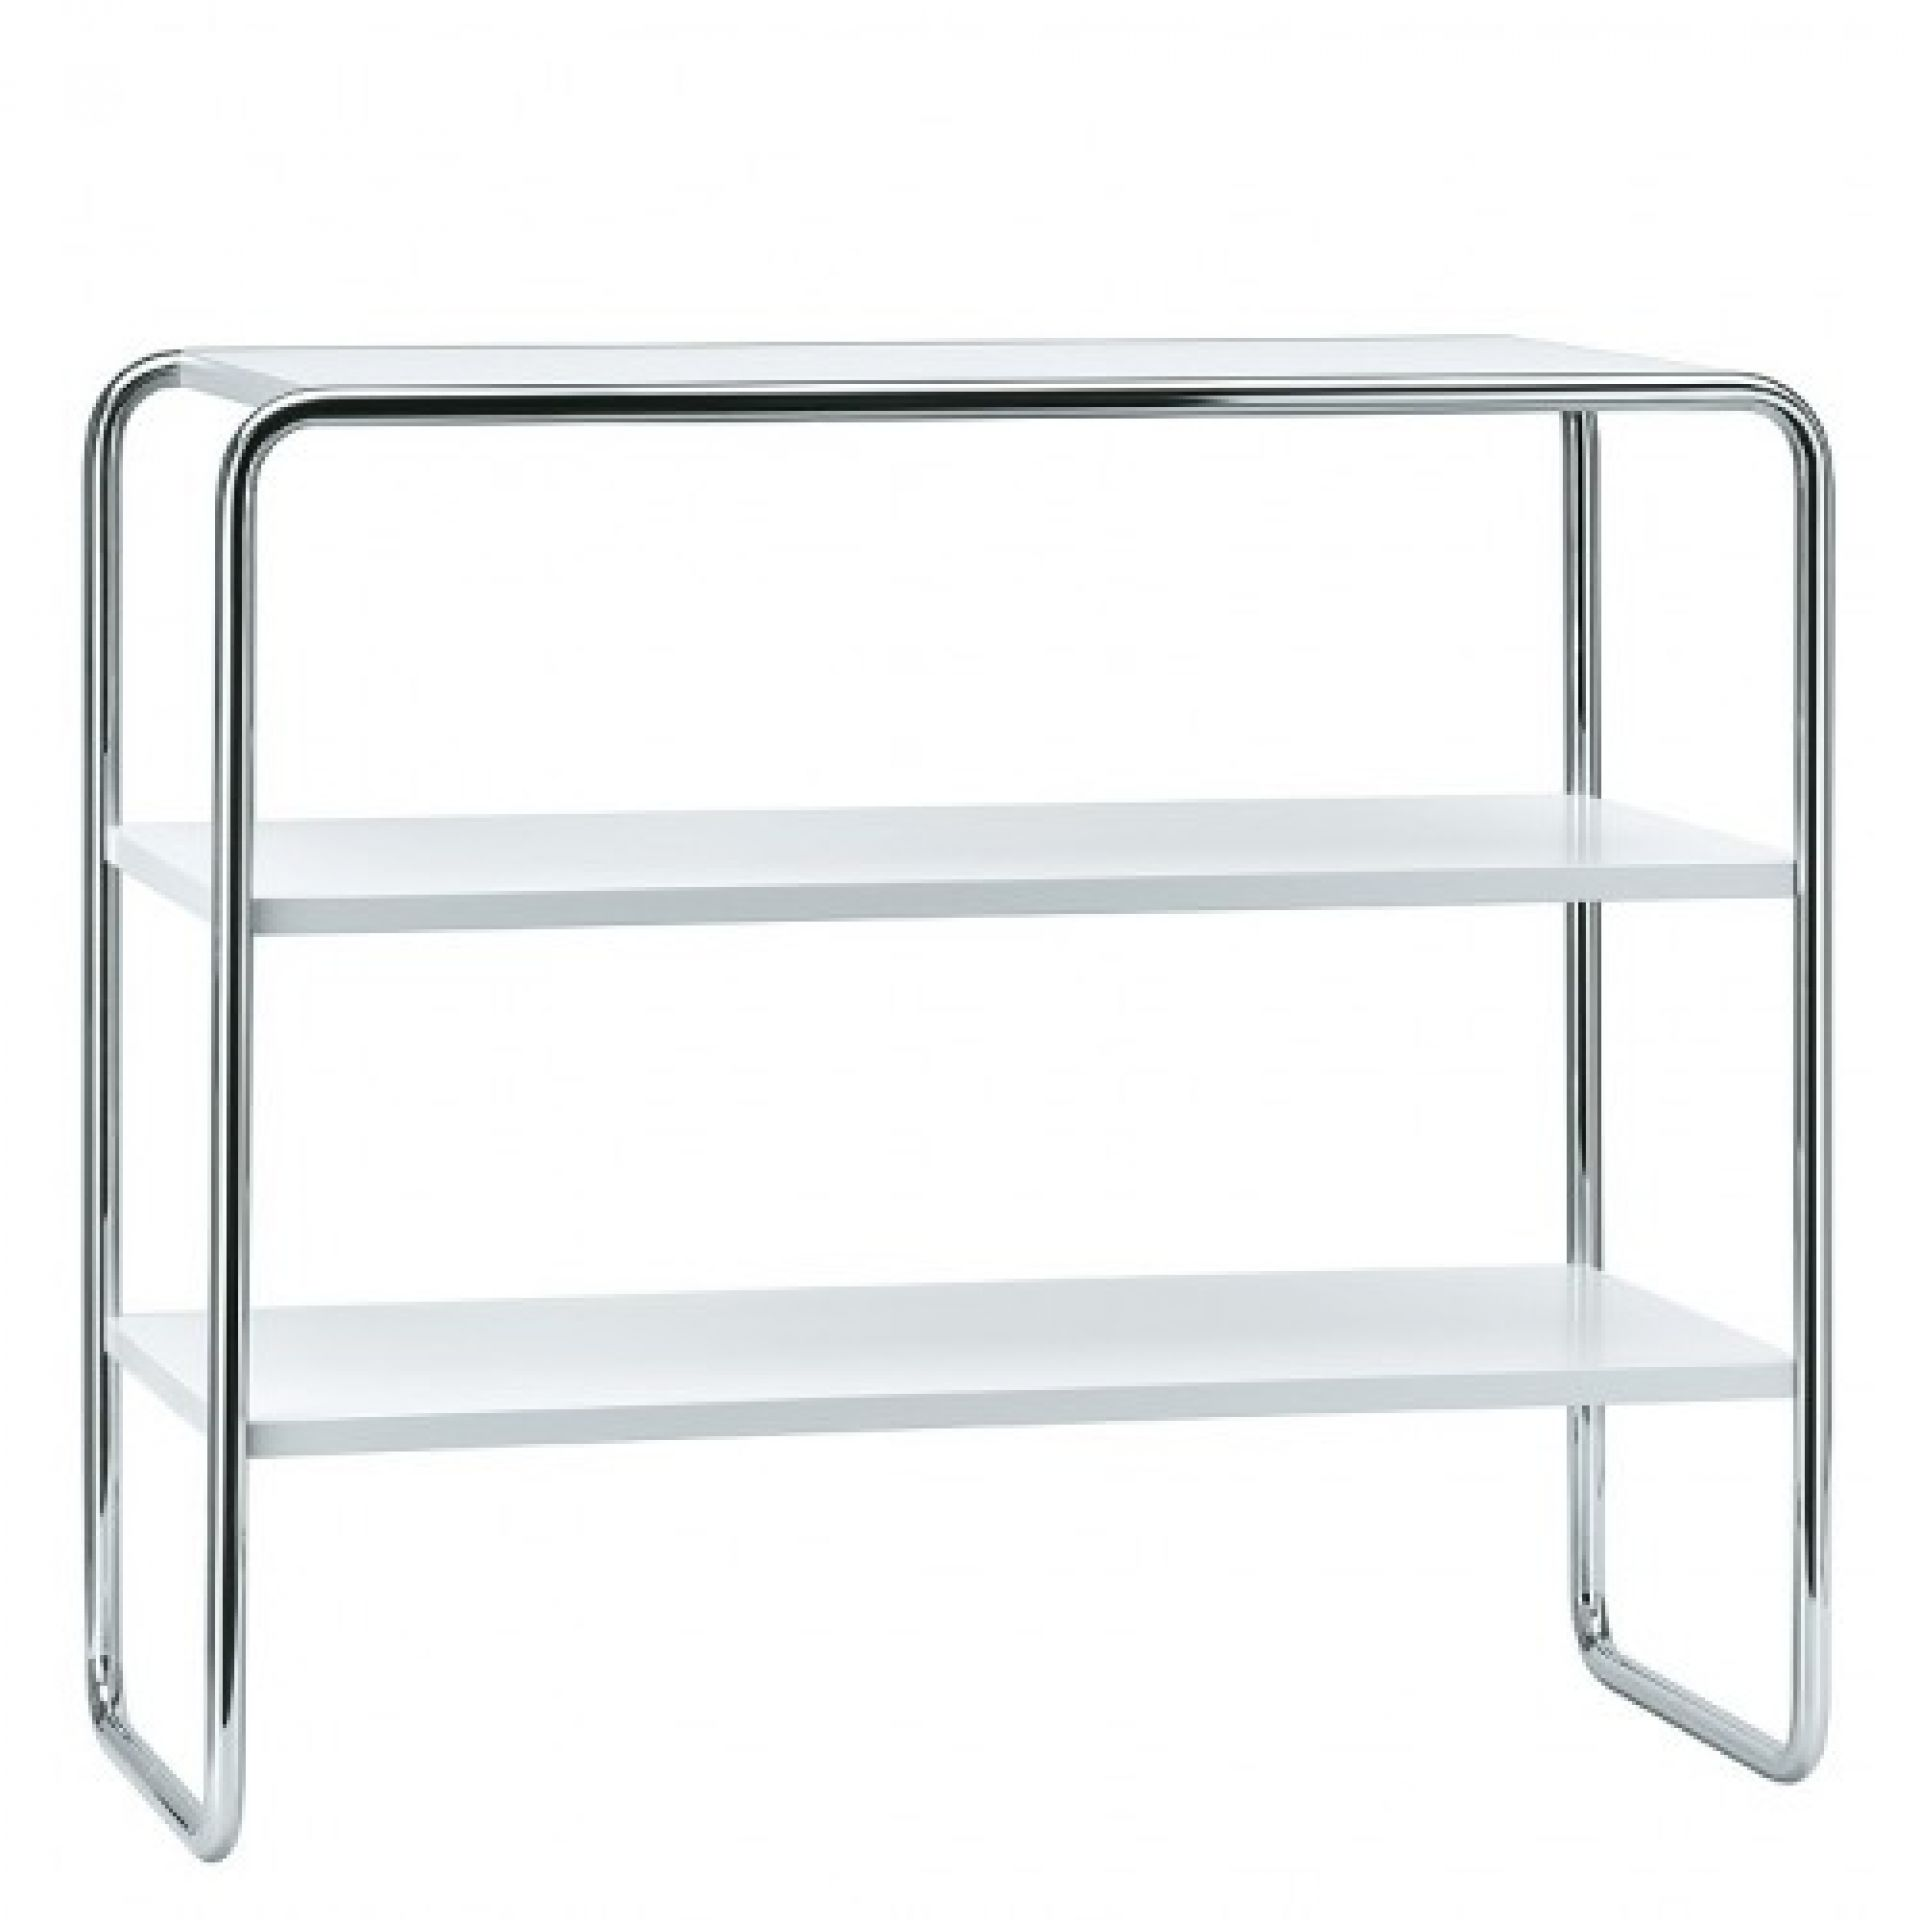 B 22 a Shelf Thonet